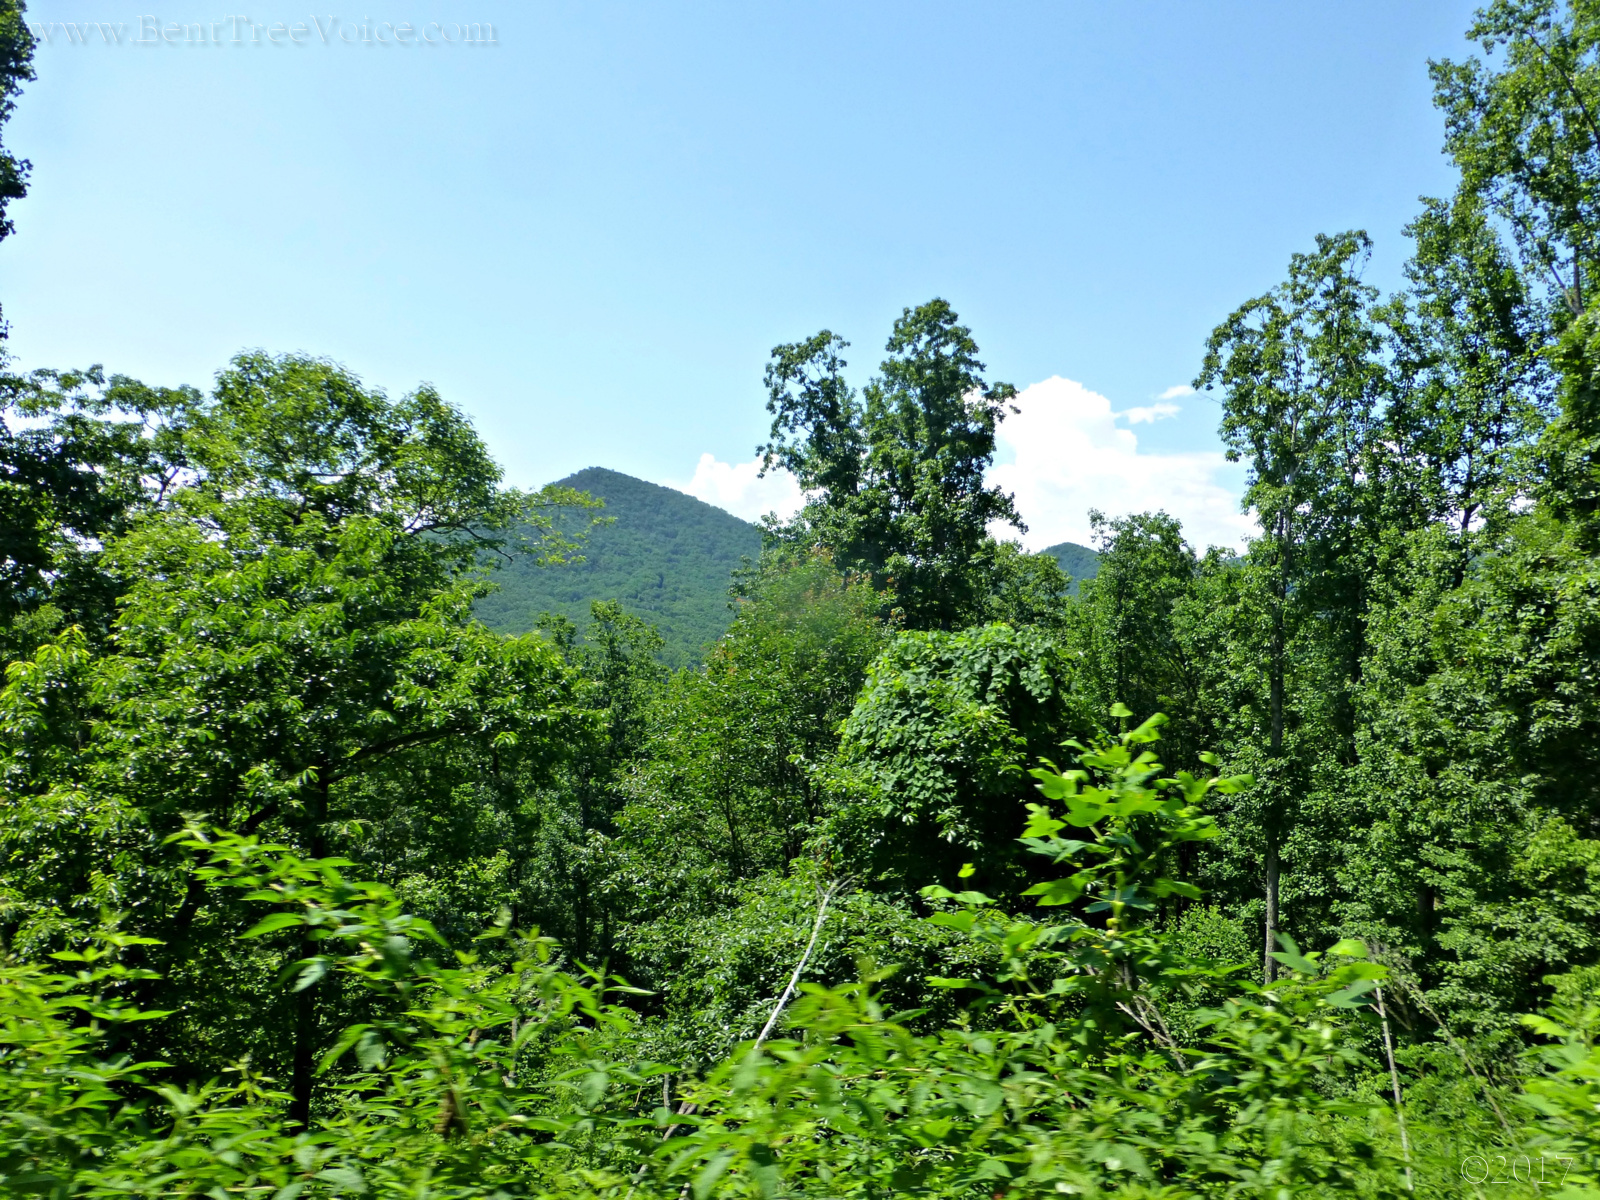 June 14, 2017 - view from Little Pine Mountain Road in Bent Tree